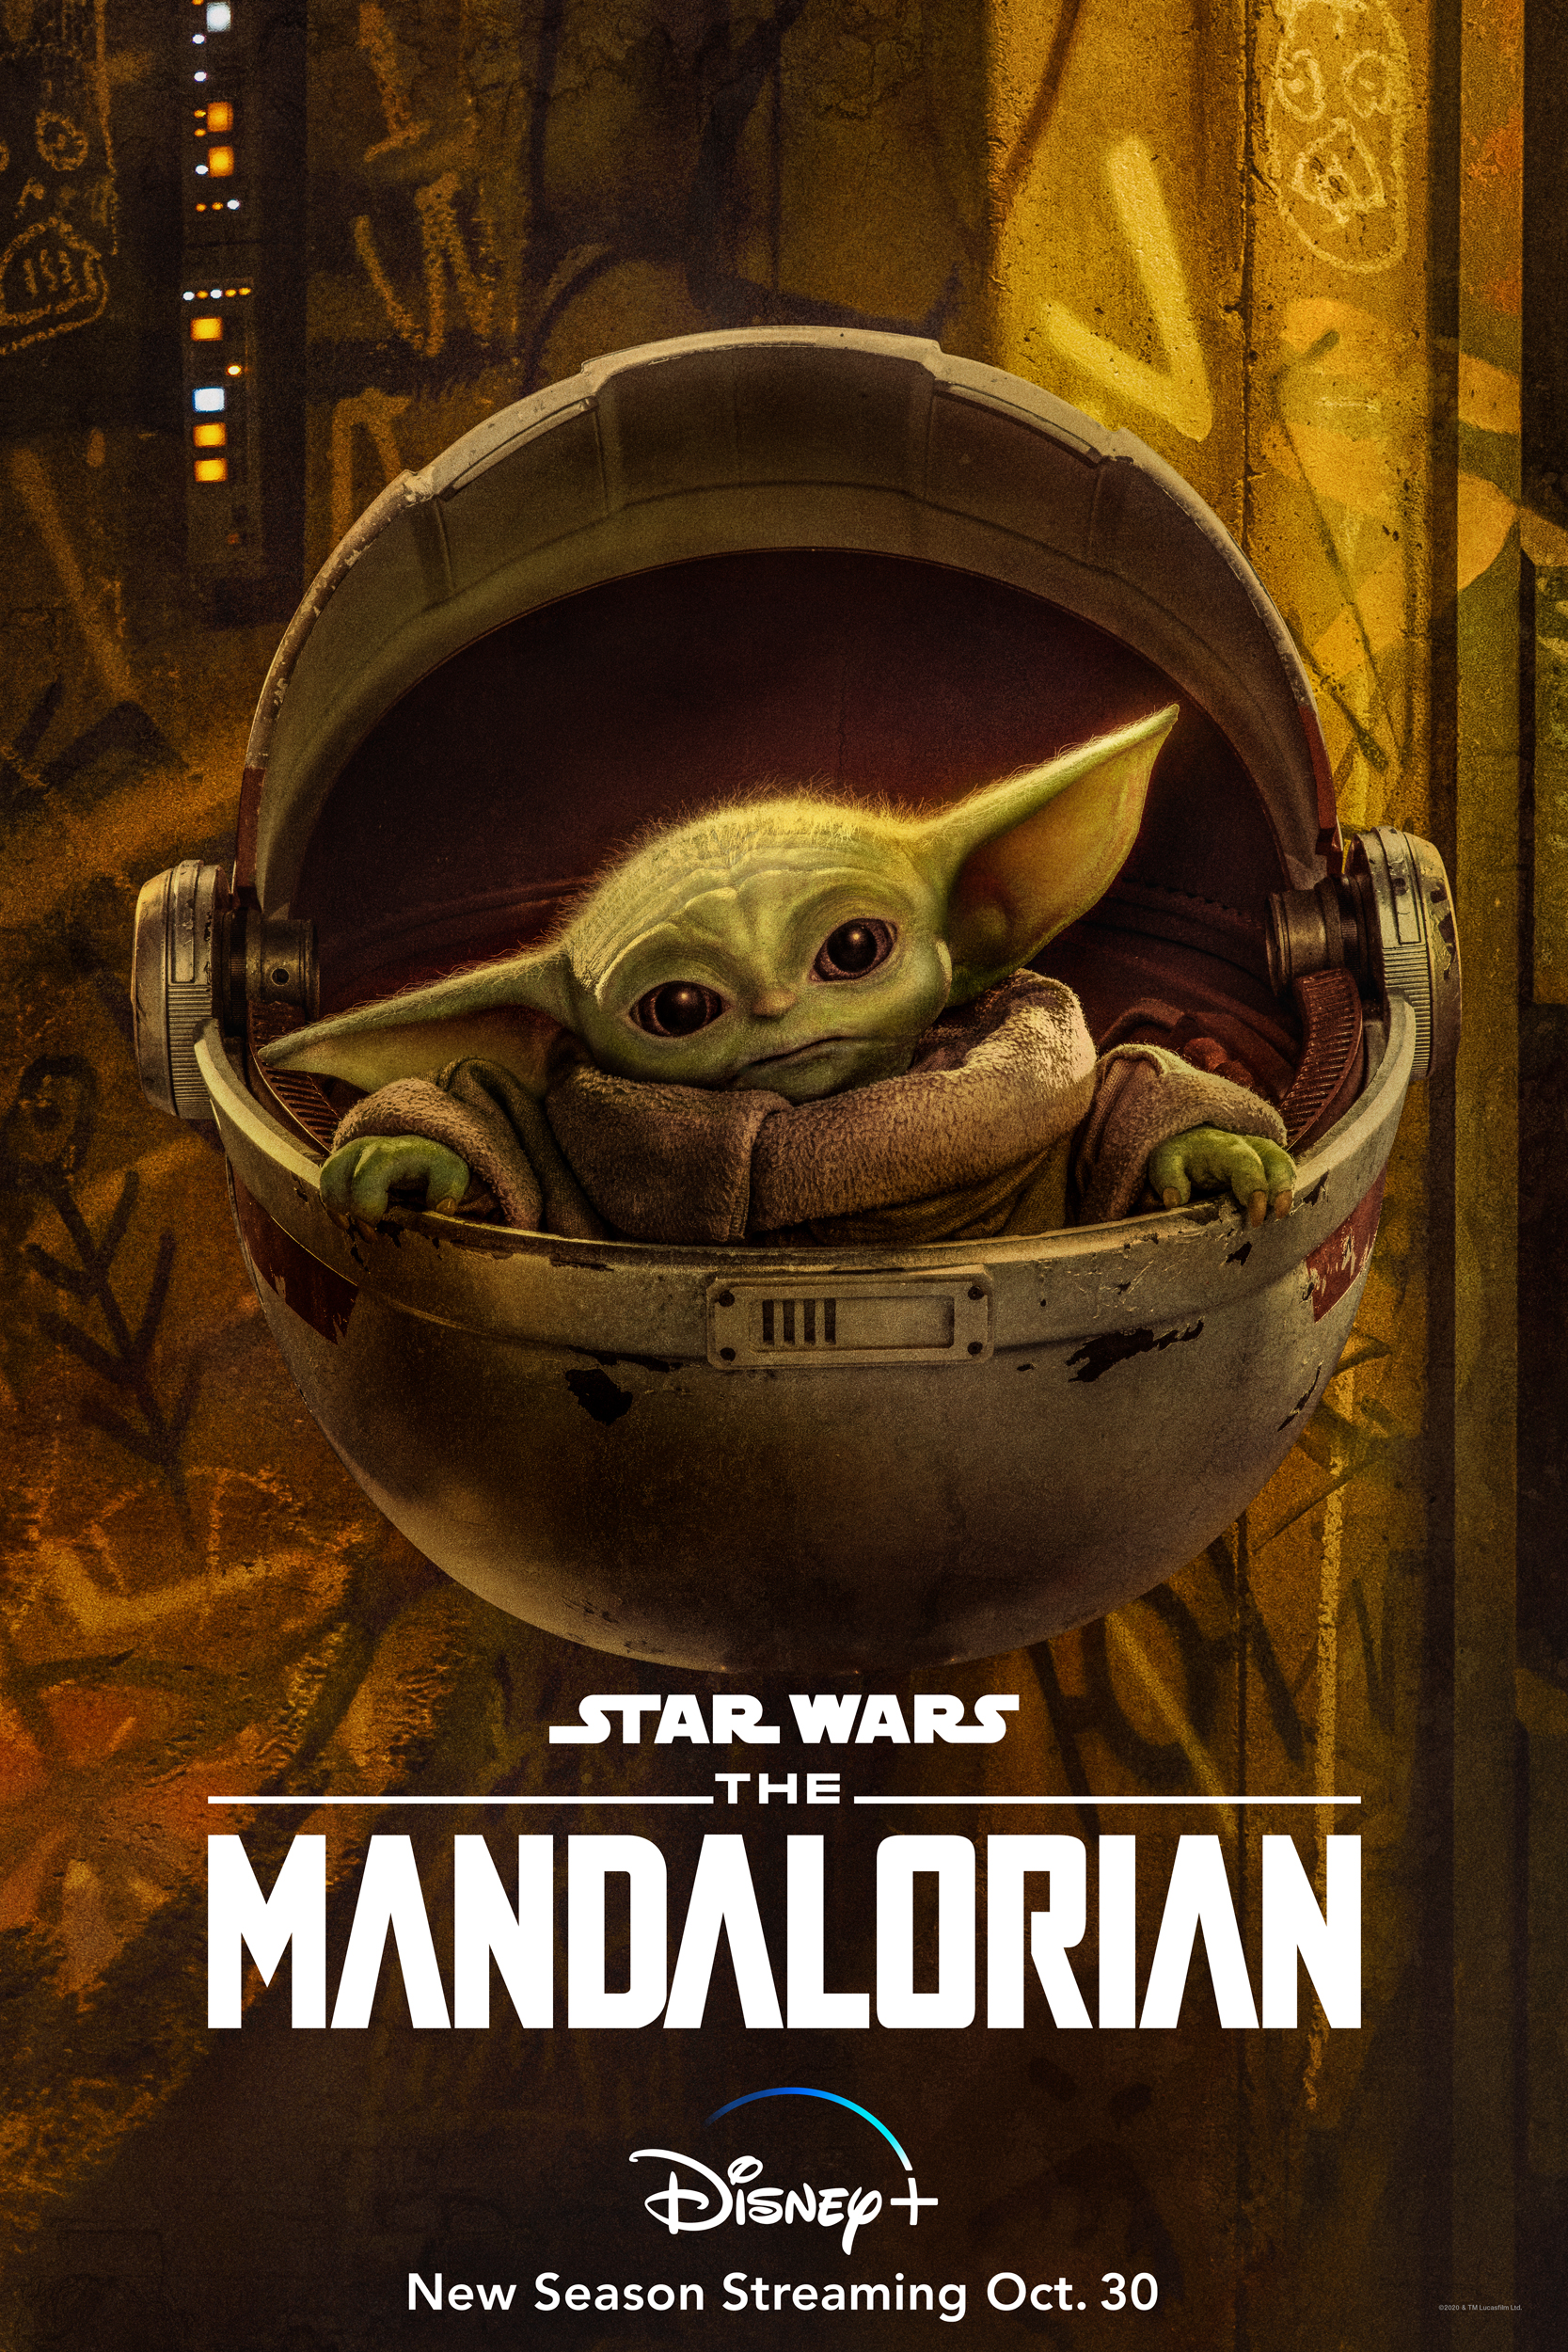 The Mandalorian Character Poster The Child